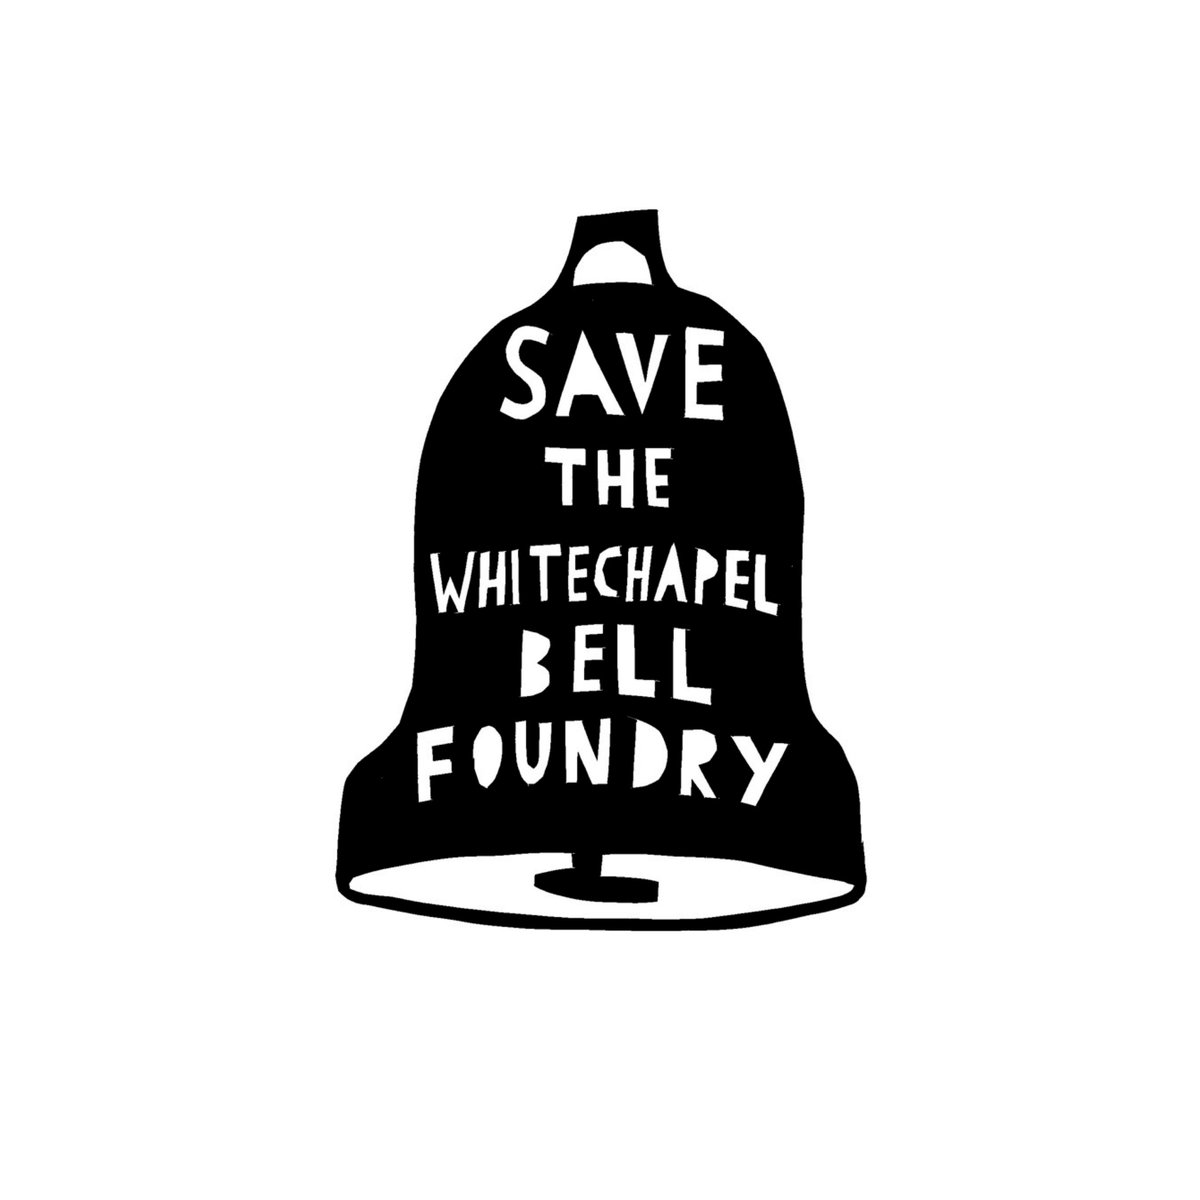 Sign our petition to SAVE THE WHITECHAPEL BELL FOUNDRY : https://bit.ly/2n1J10J